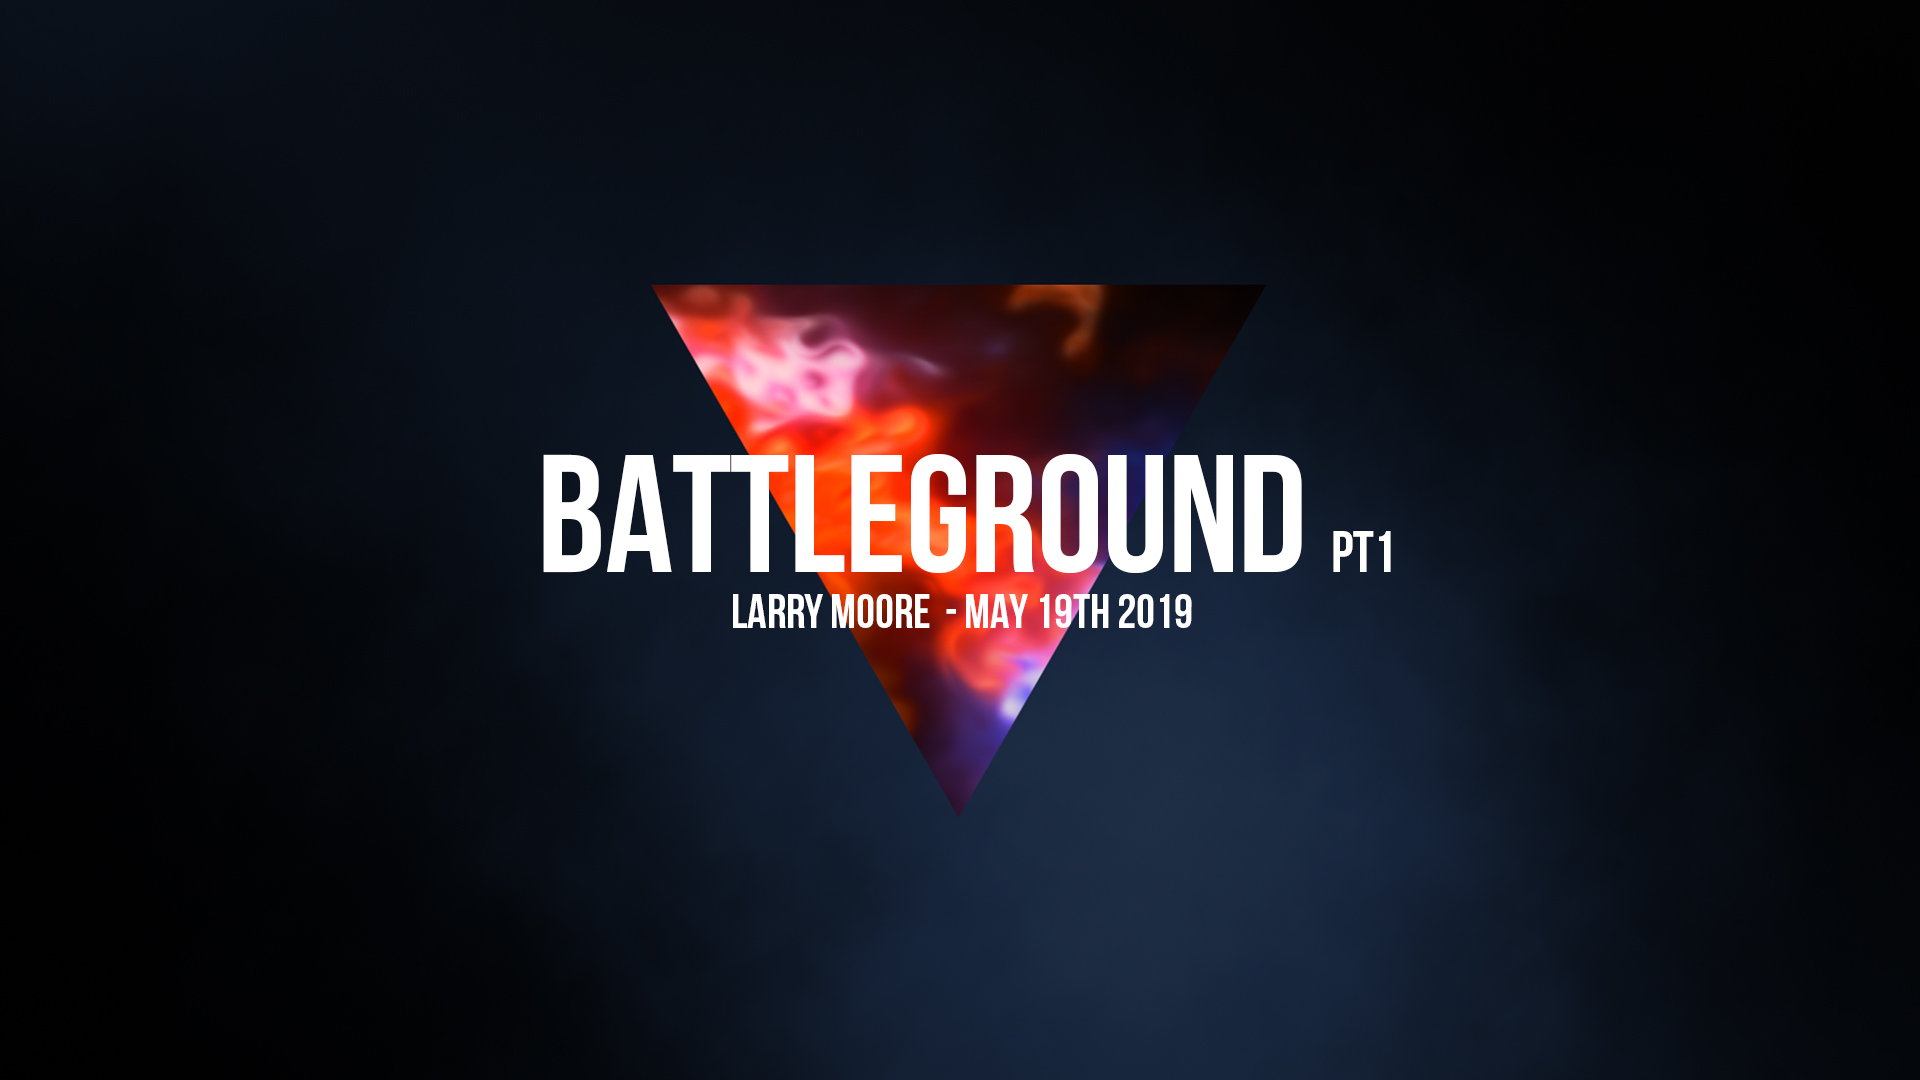 BATTLEGROUND 1920X1080.jpg